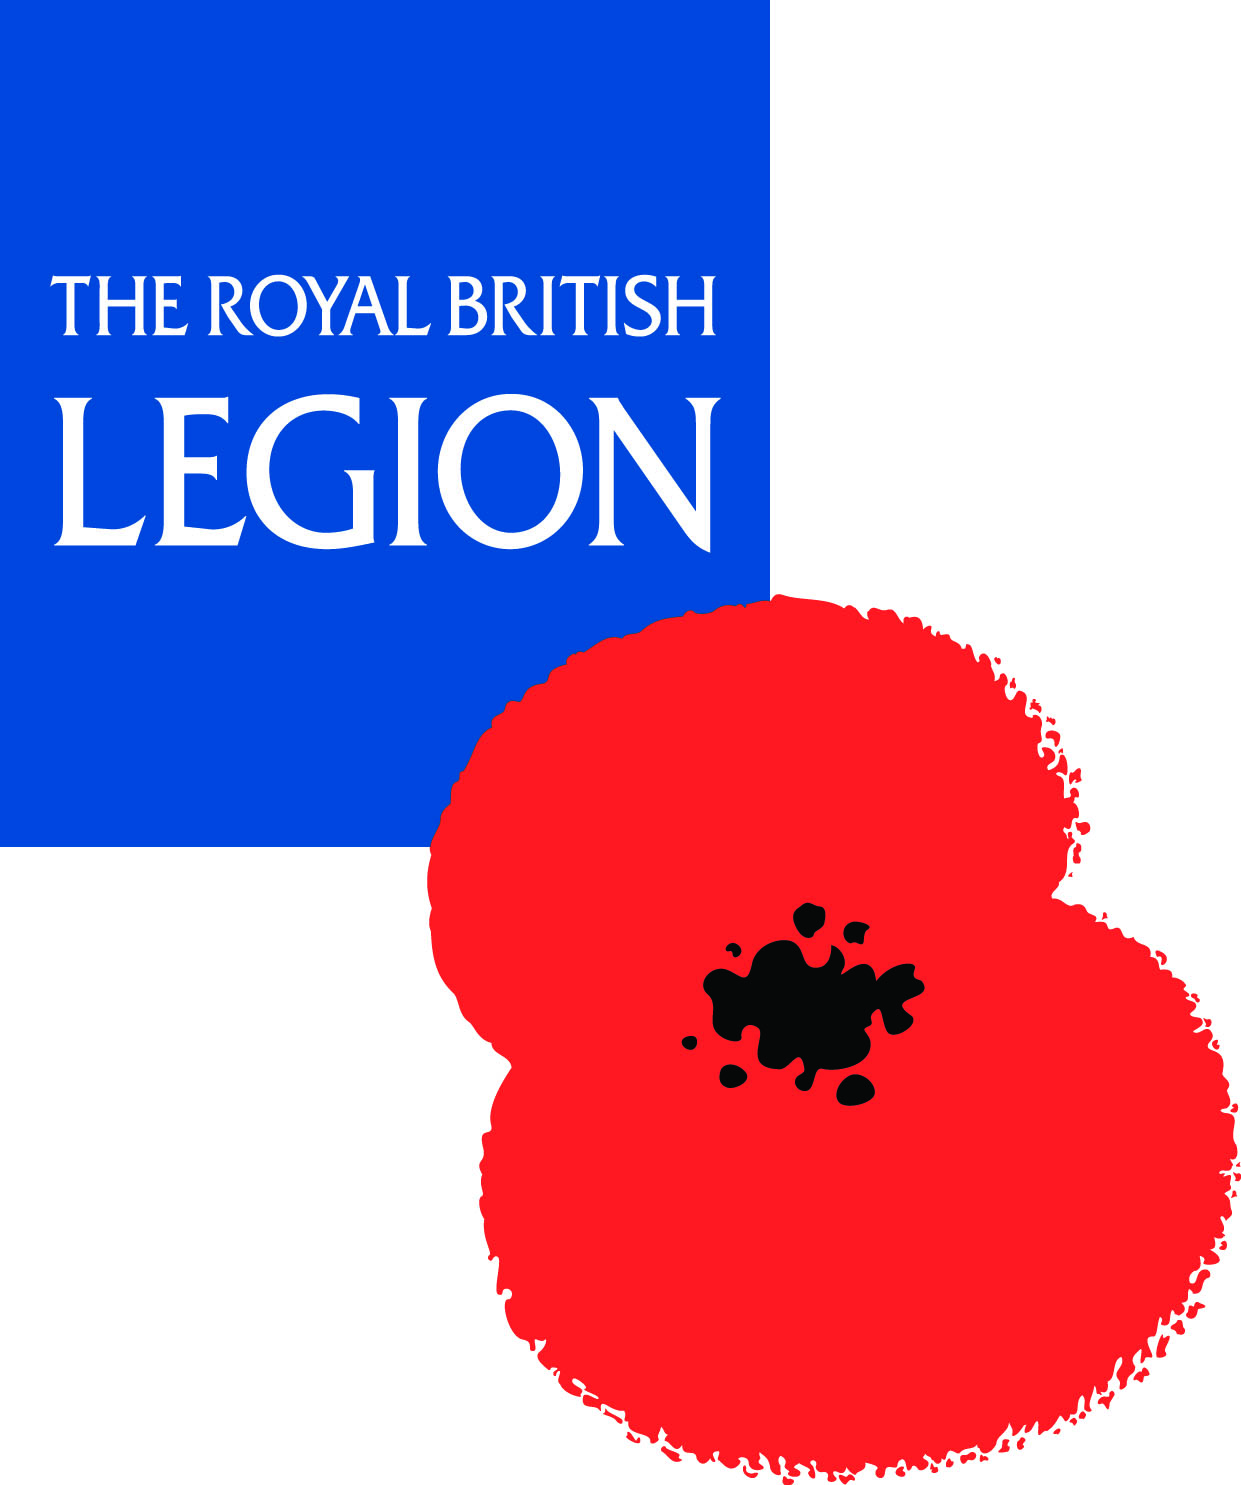 British Legion.jpeg